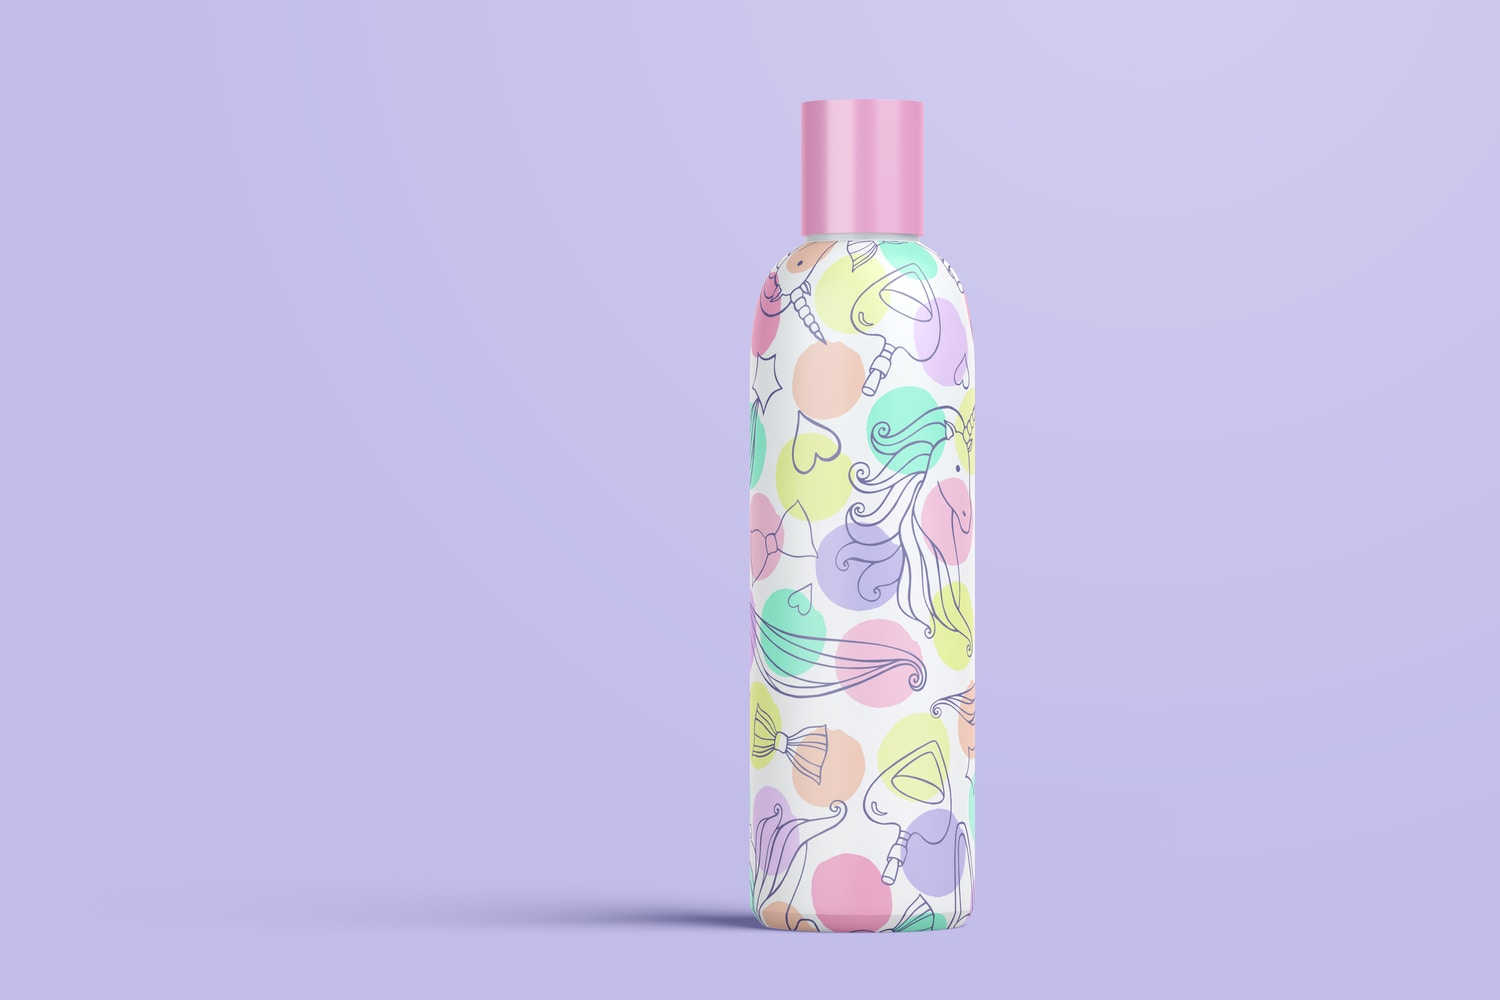 4 oz / 120 ml Cosmo Round Shape Cosmetic Bottle Mockup with Disc Cap in Front View 02